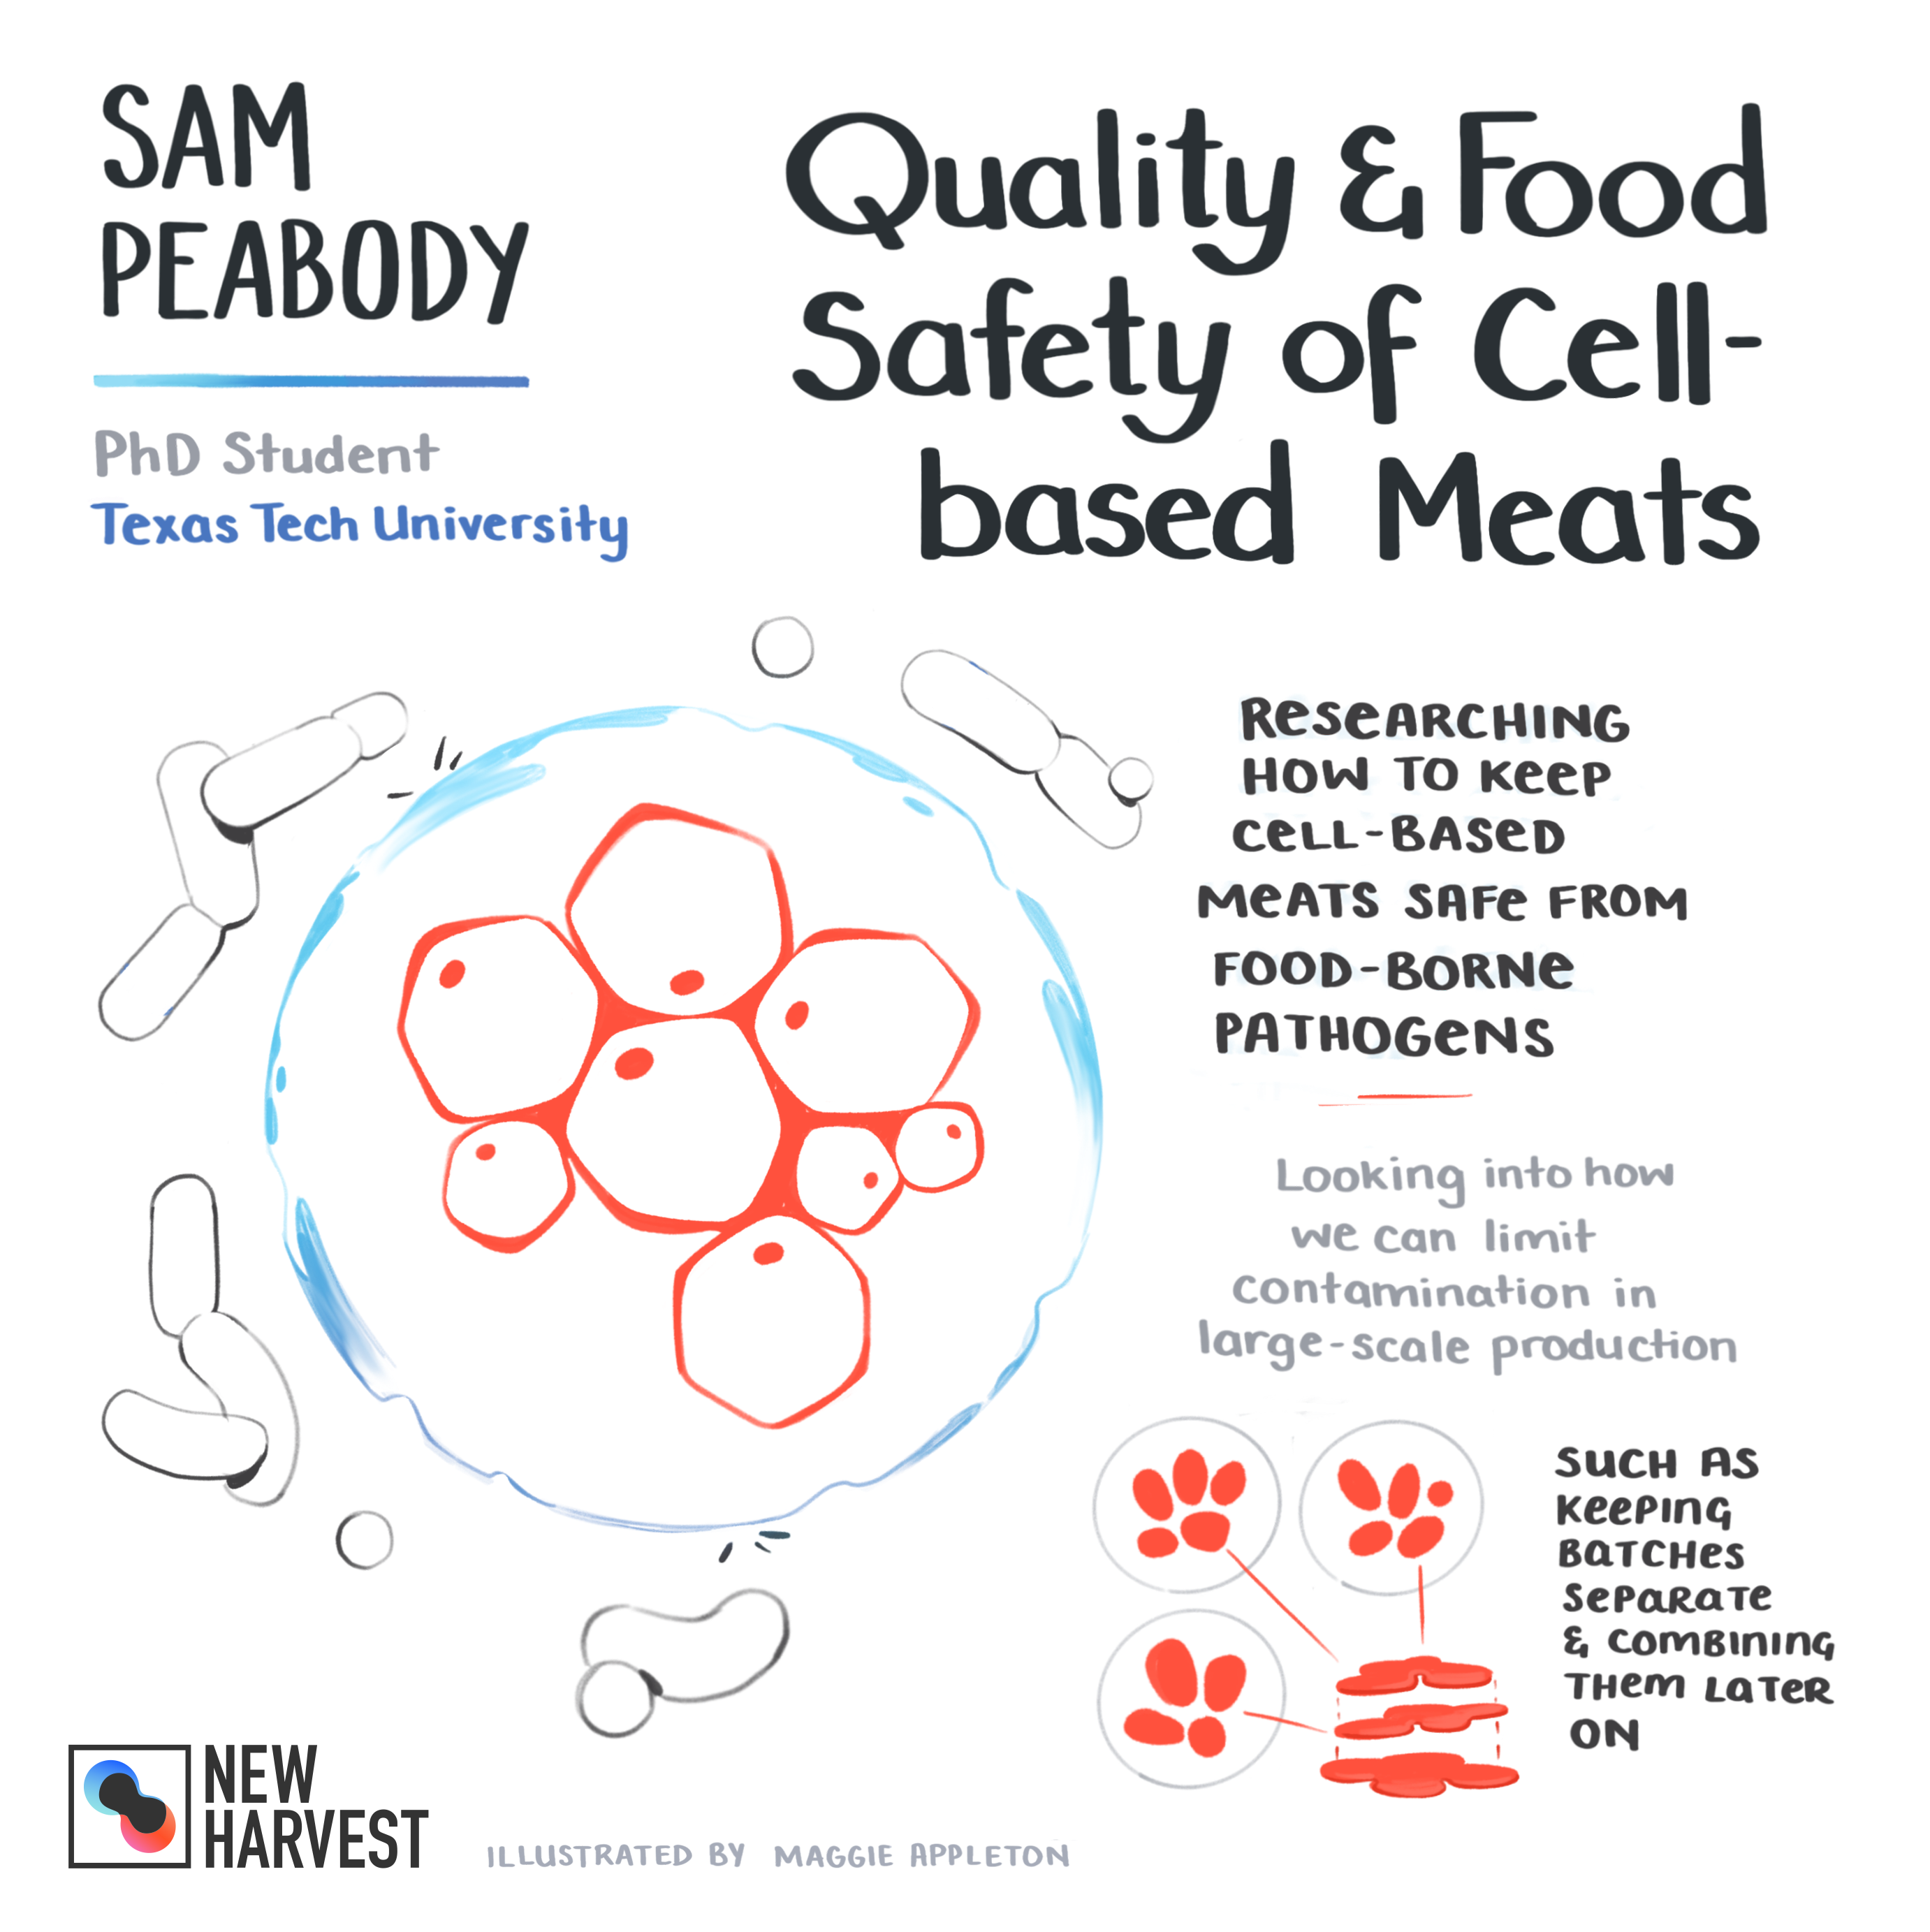 Diagram of Sam Peabody's breakdown of quality and food safety of cell based meat